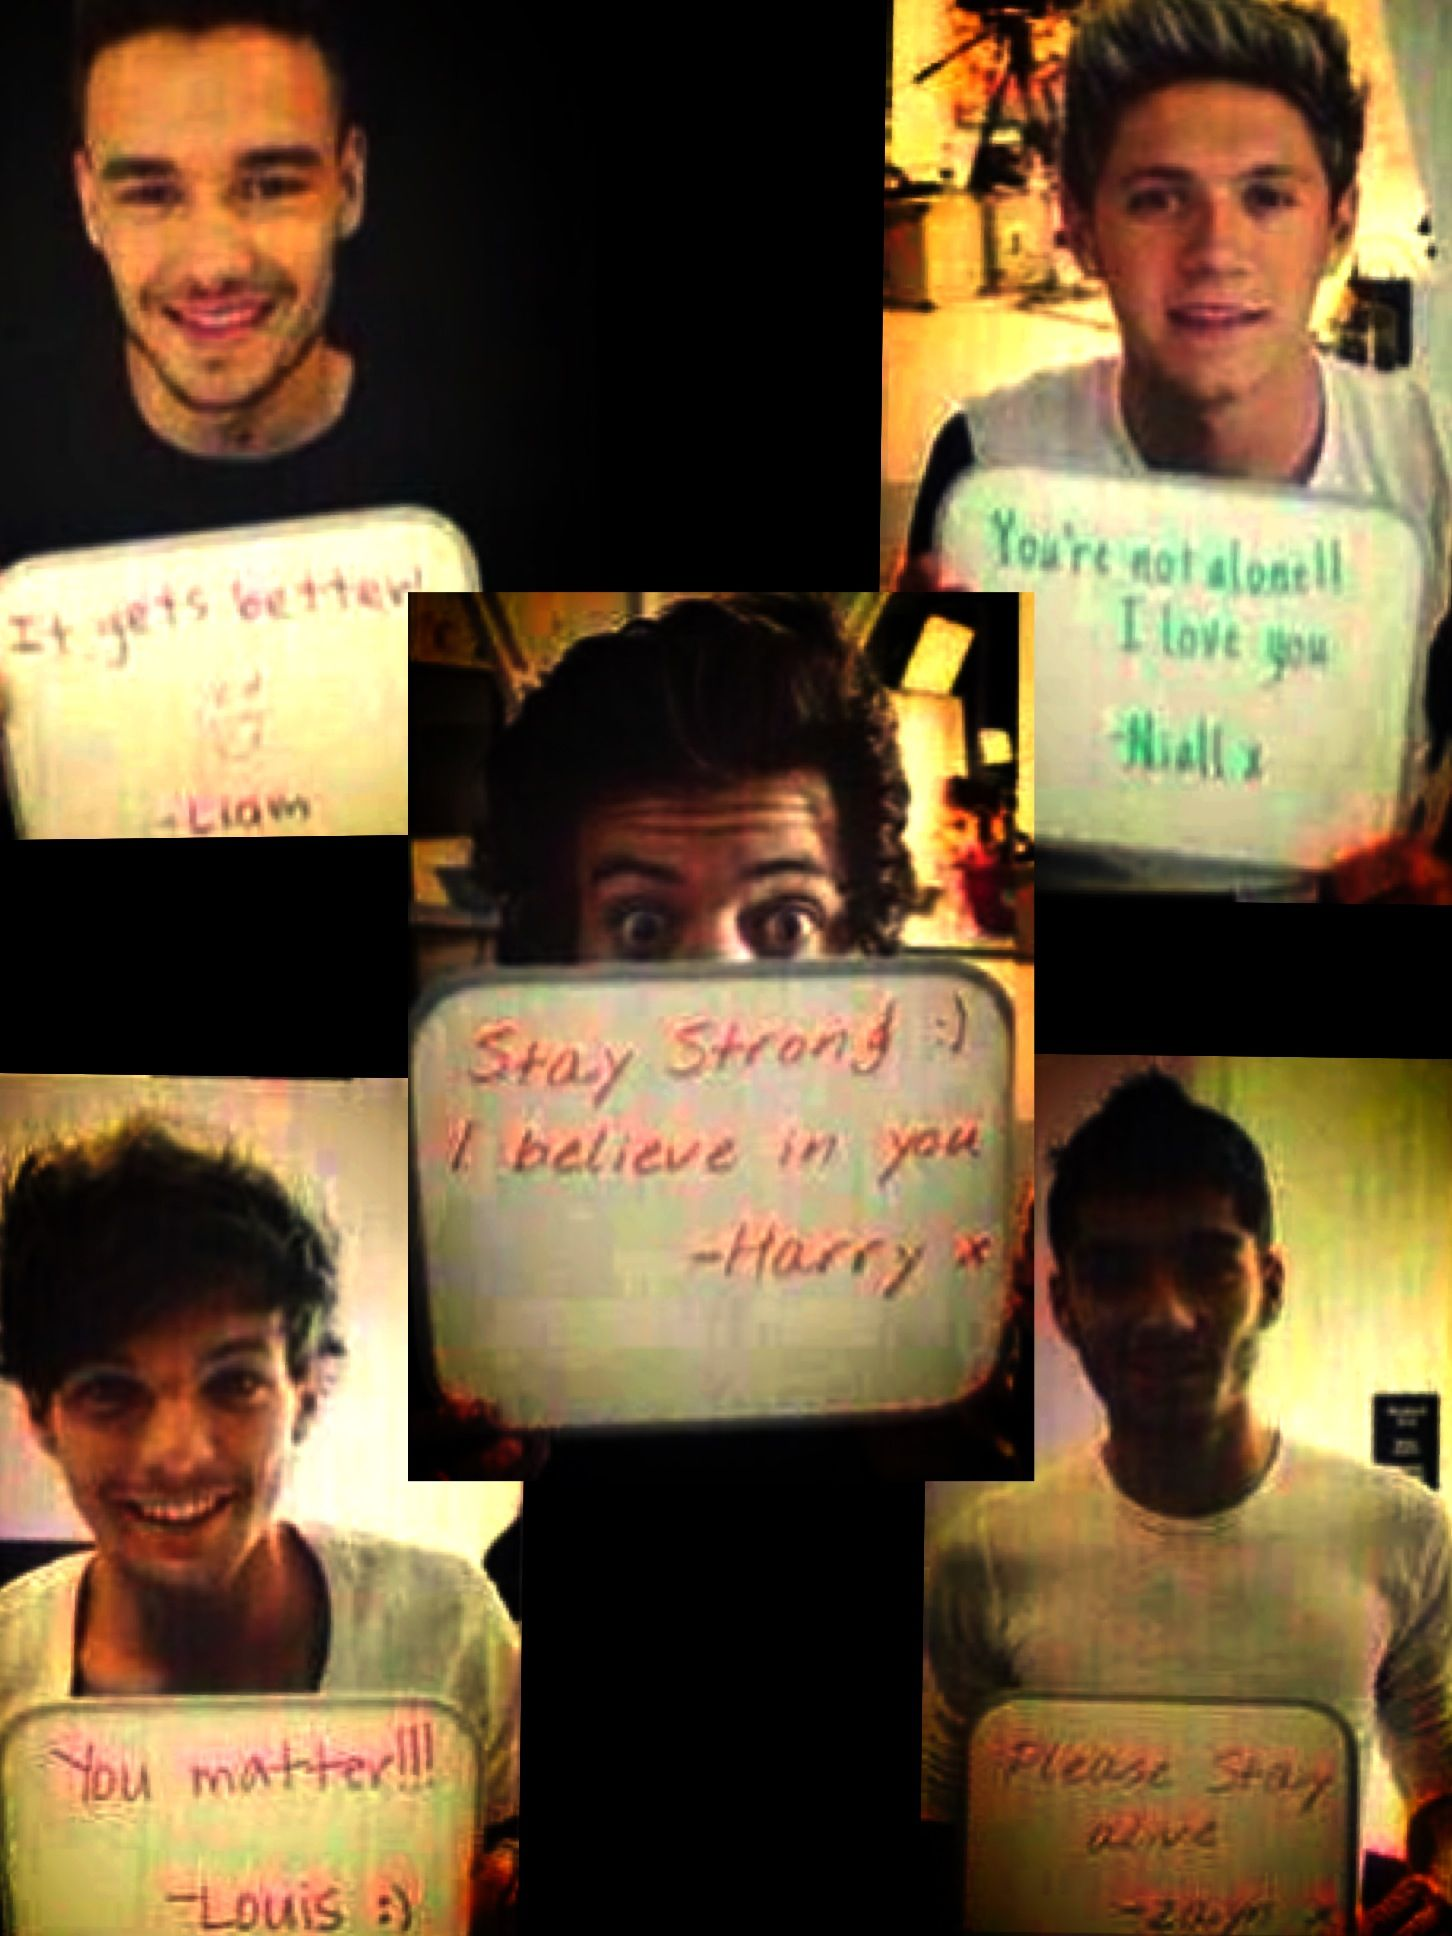 You're not alone, I love you- Niall, Please stray alive- Zayn, Stay strong, I believe in you -Harry, You matter -Louis, It gets better -Liam